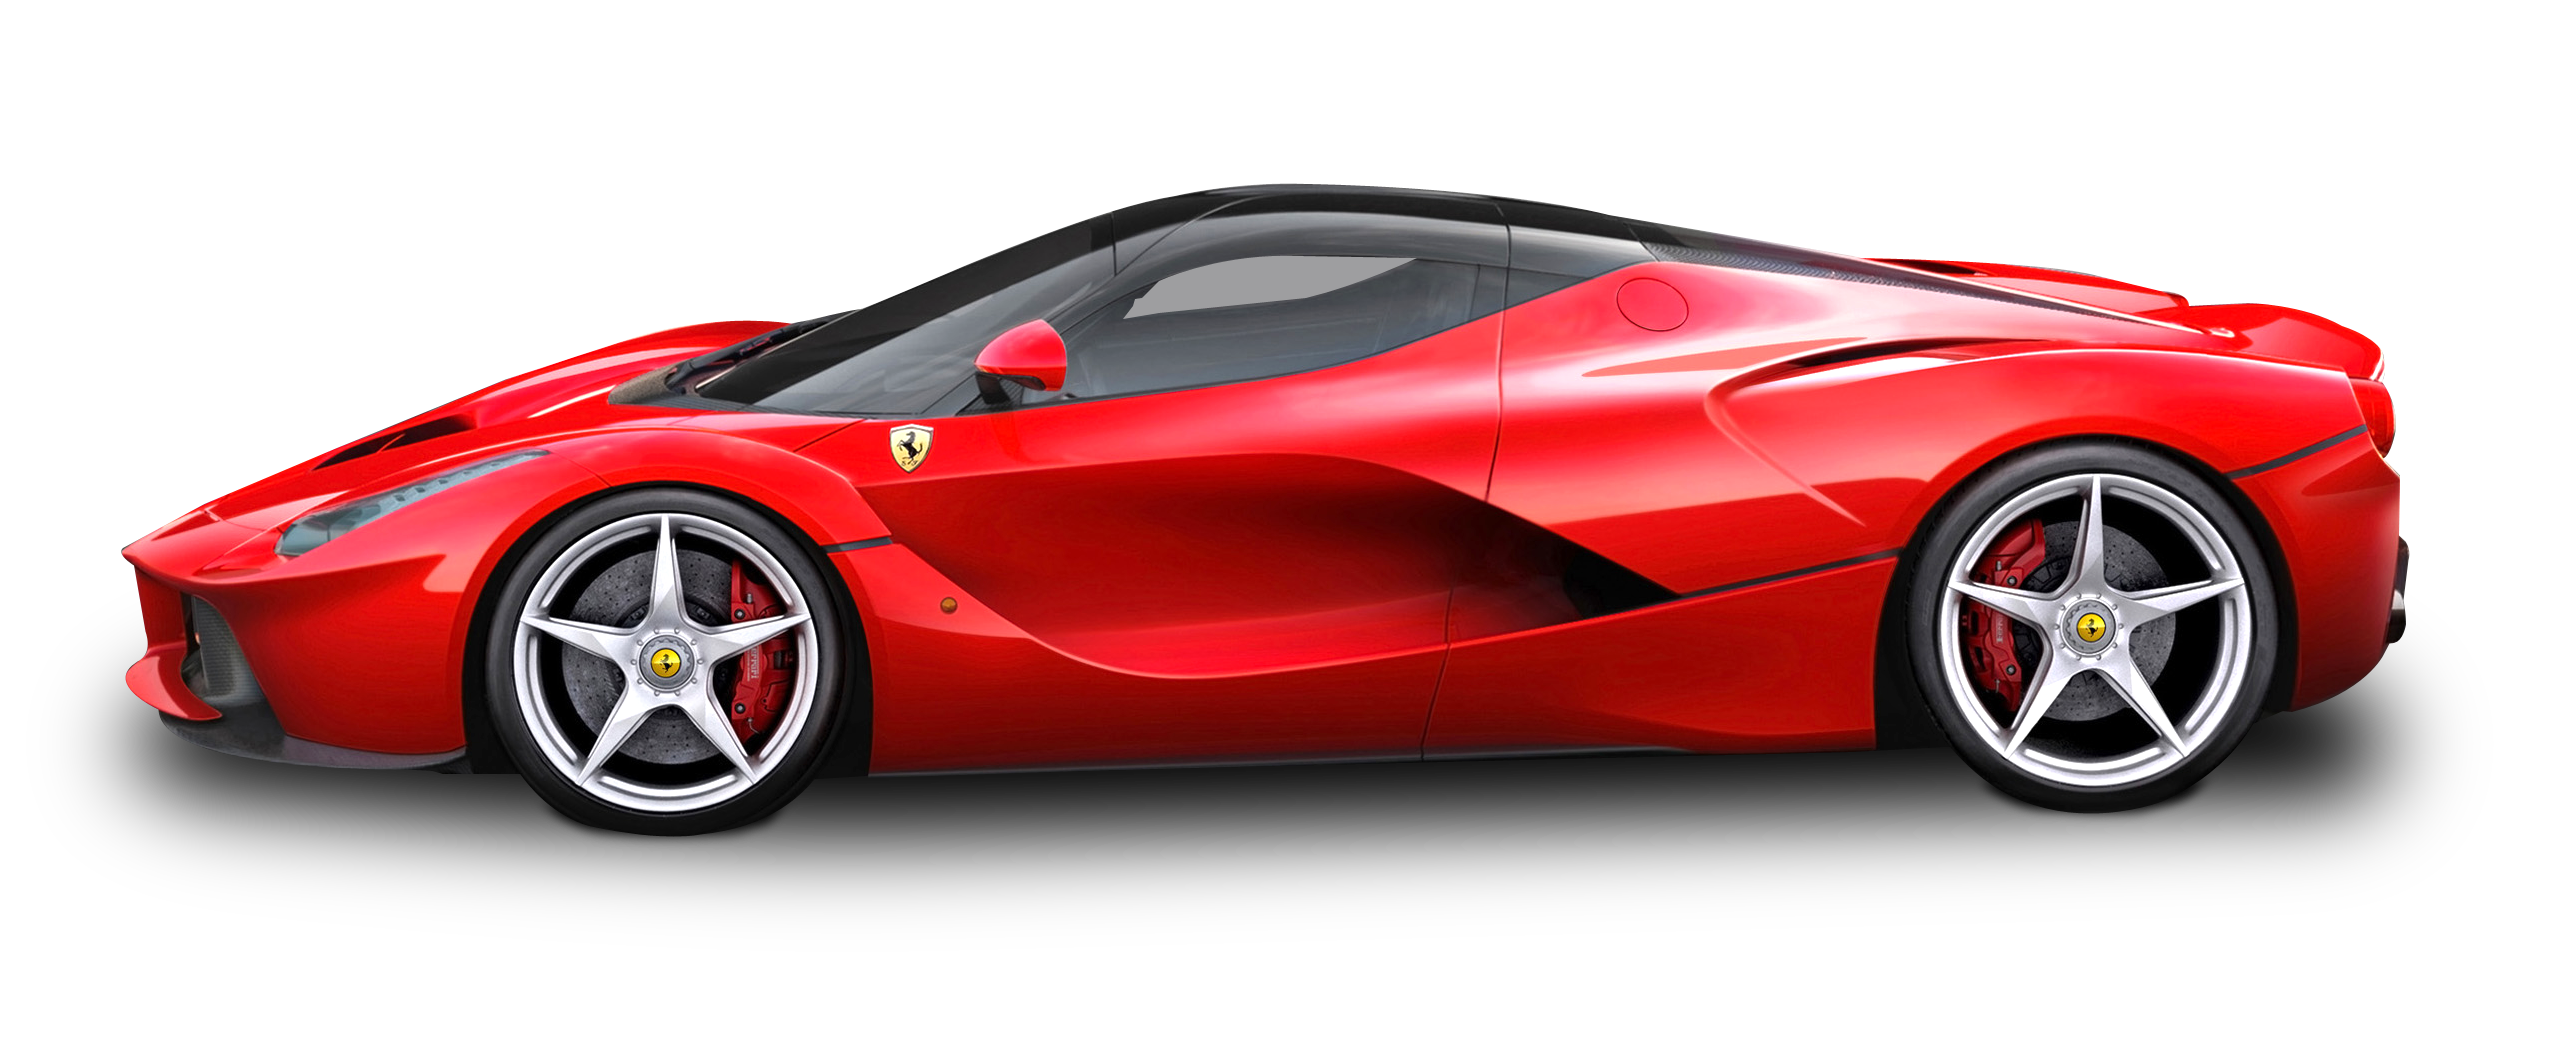 Red Ferrari Laferrari Car Png Image Pngpix